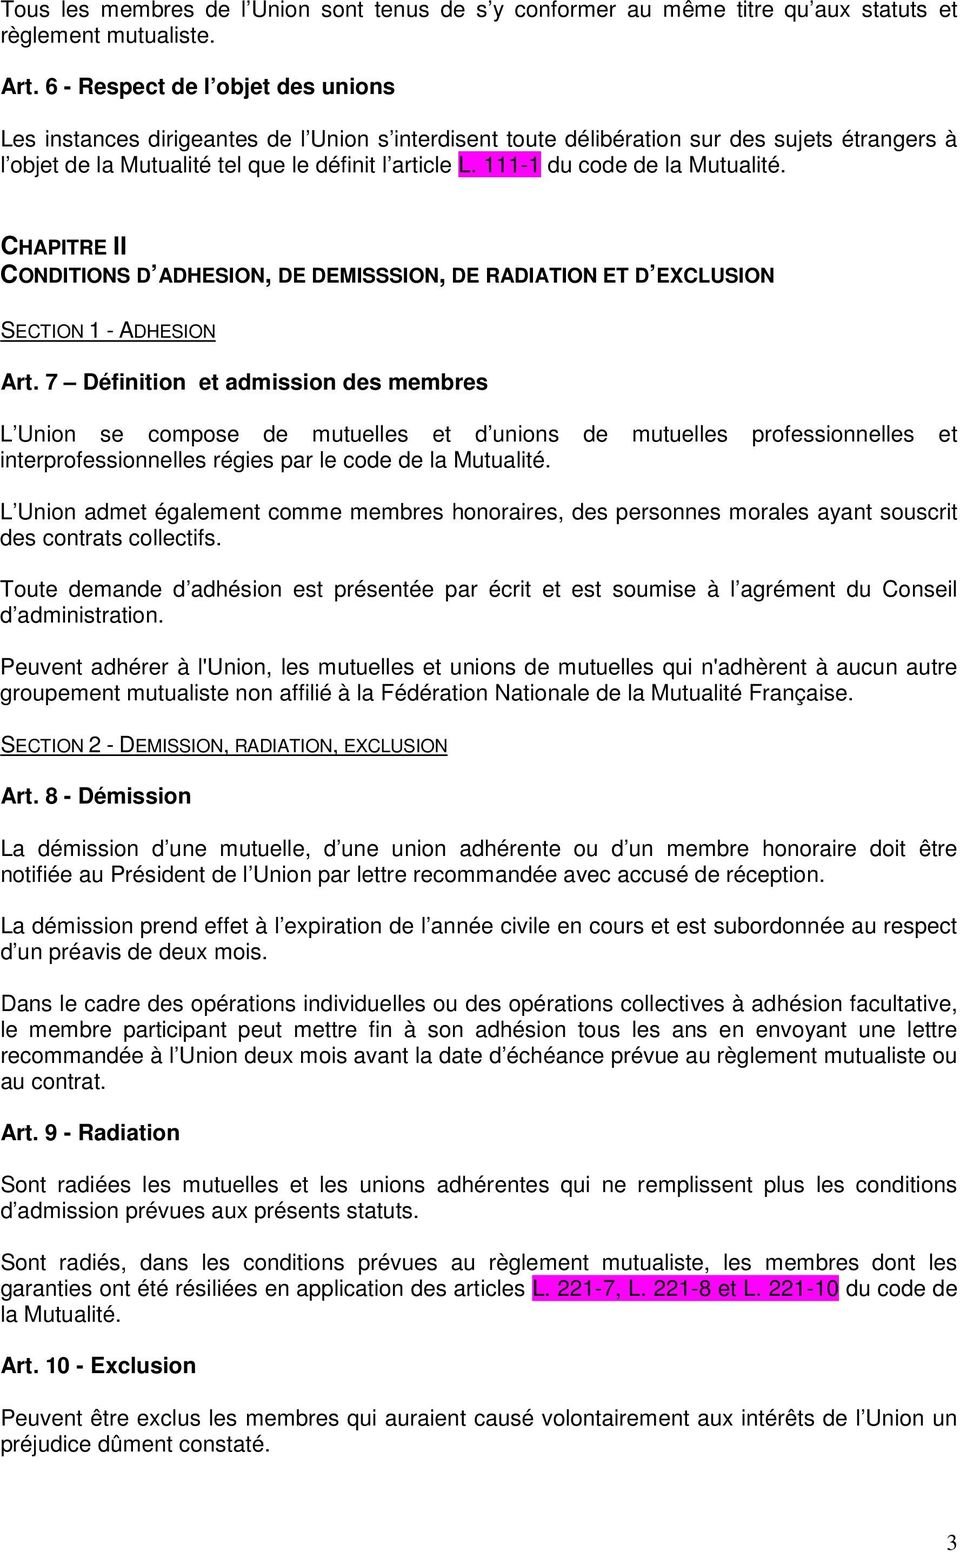 111-1 du code de la Mutualité. CHAPITRE II CONDITIONS D ADHESION, DE DEMISSSION, DE RADIATION ET D EXCLUSION SECTION 1 - ADHESION Art.